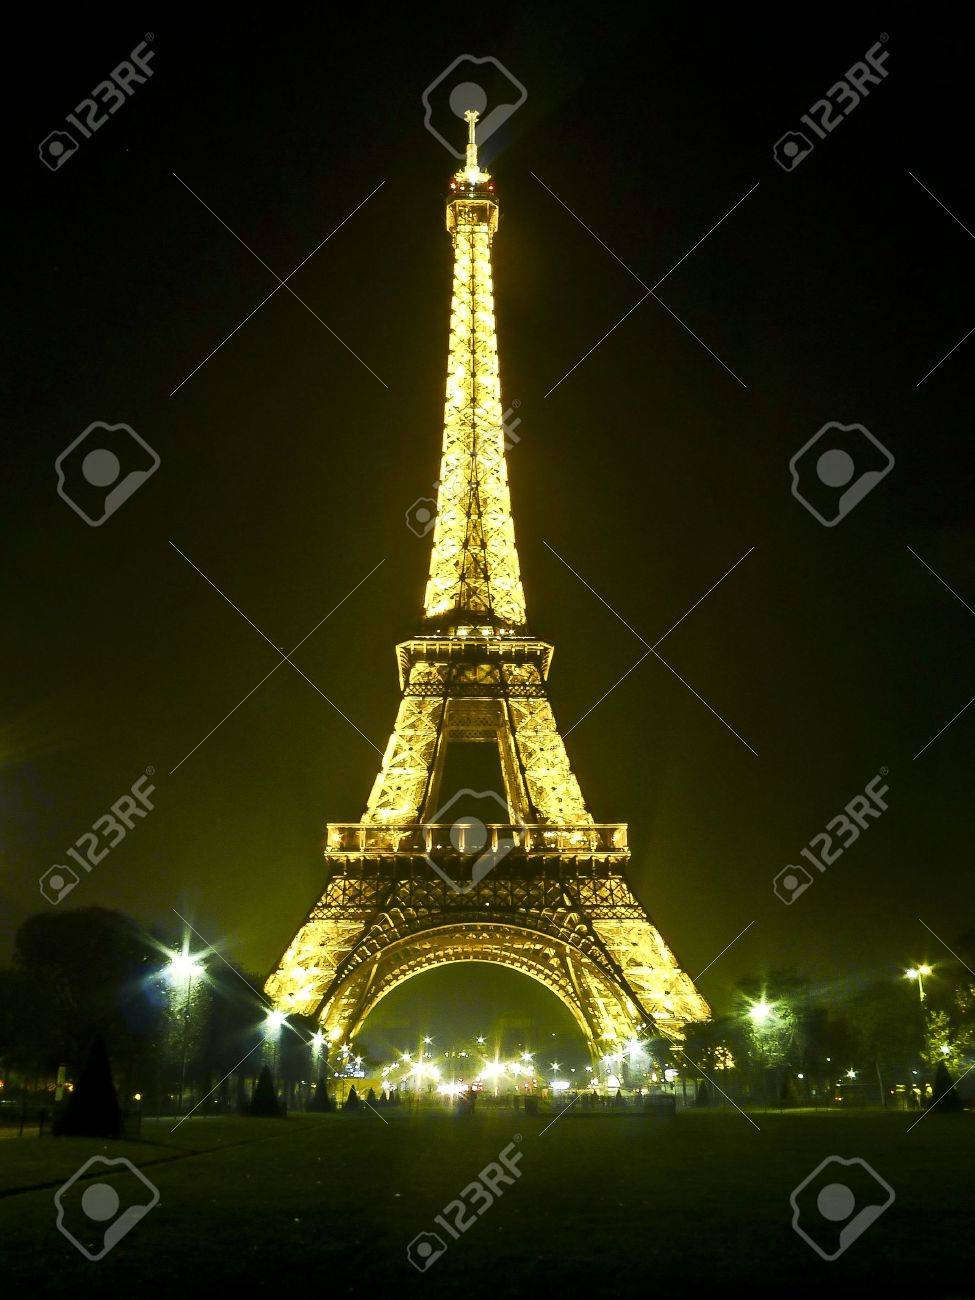 eiffel tower at night in paris, france Stock Photo - 11521183